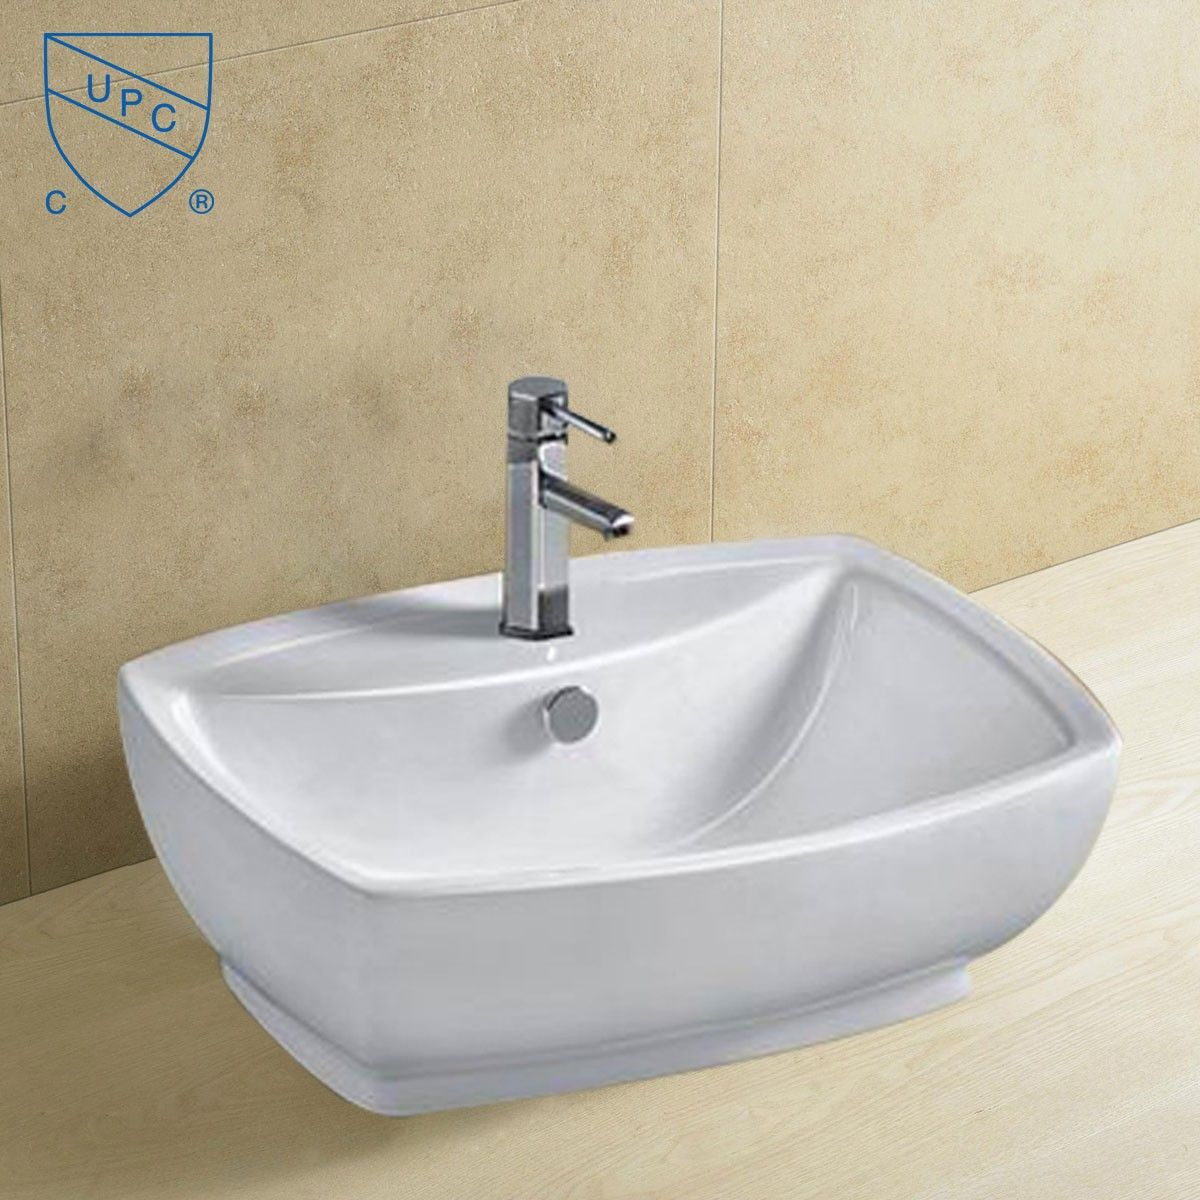 Decoraport White Rectangle Ceramic Above Counter Basin (CL-1090)